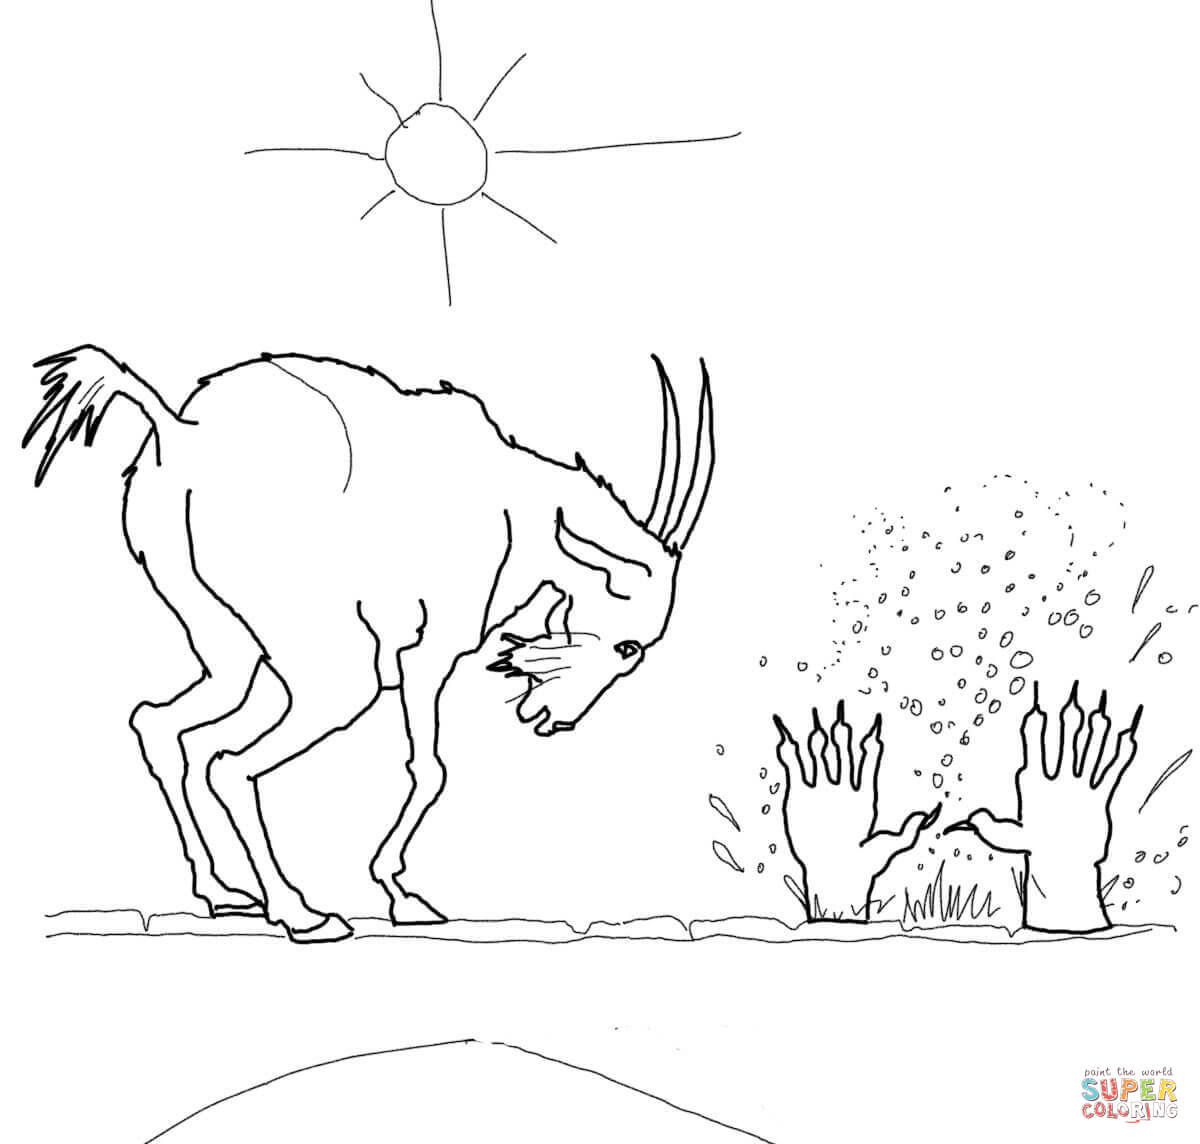 3 Billy Goats Gruff Coloring Pages Sketch Coloring Page